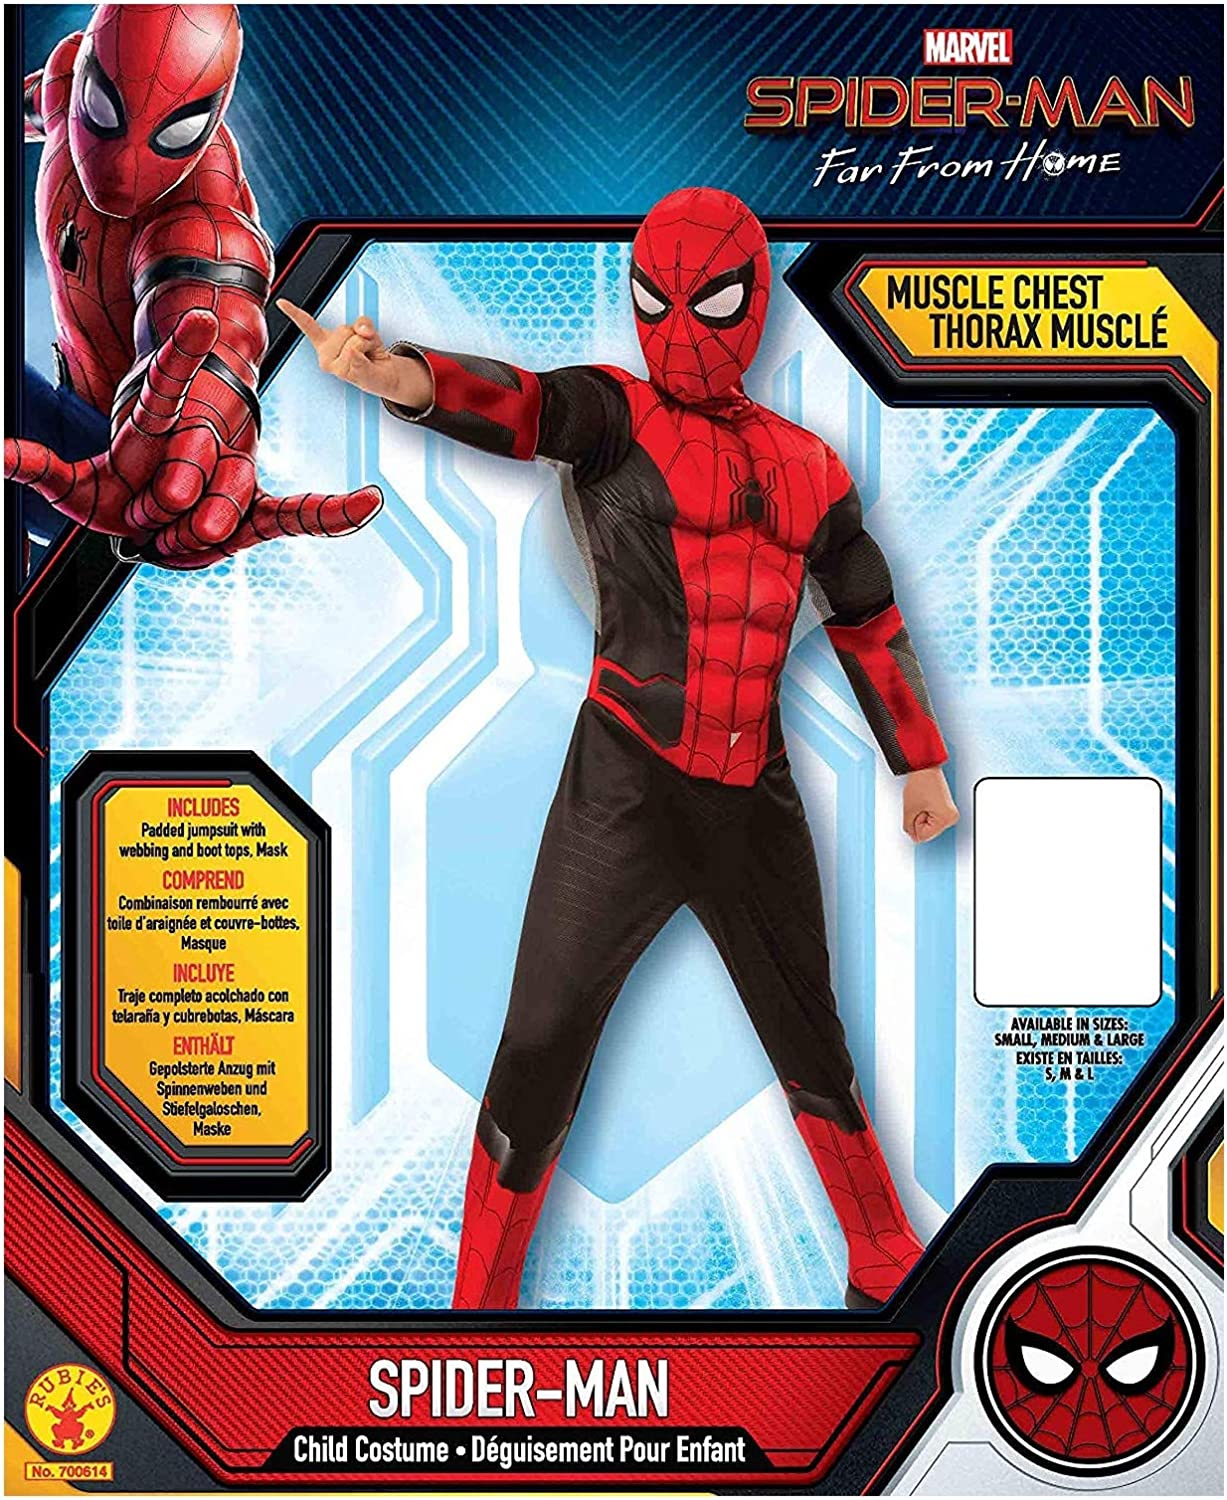 Rubie S Official Marvel Spider Man Costume Spider Man Far From Home Kids Deluxe Costume Amazon De Toys Games